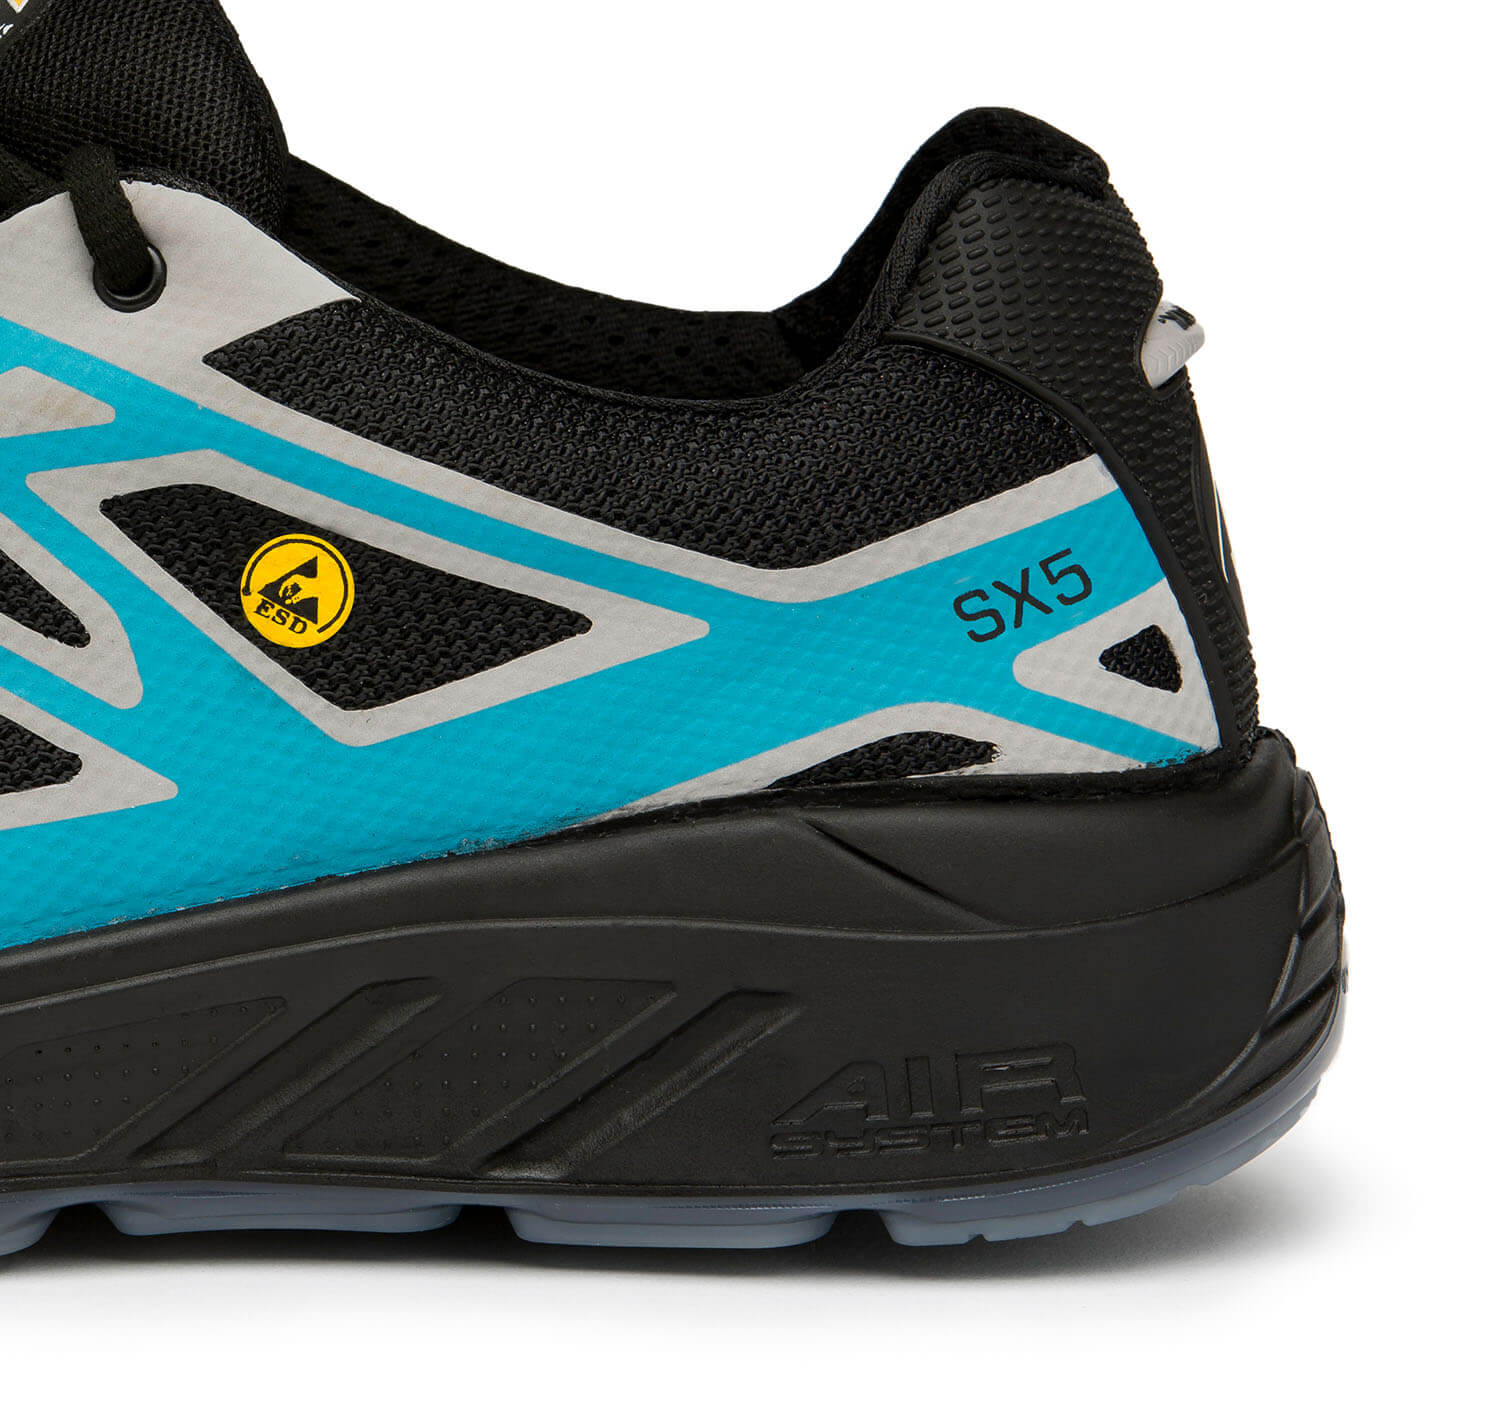 Best Safety Shoes For Comfort From Denmark - SX5 - AIRTOX